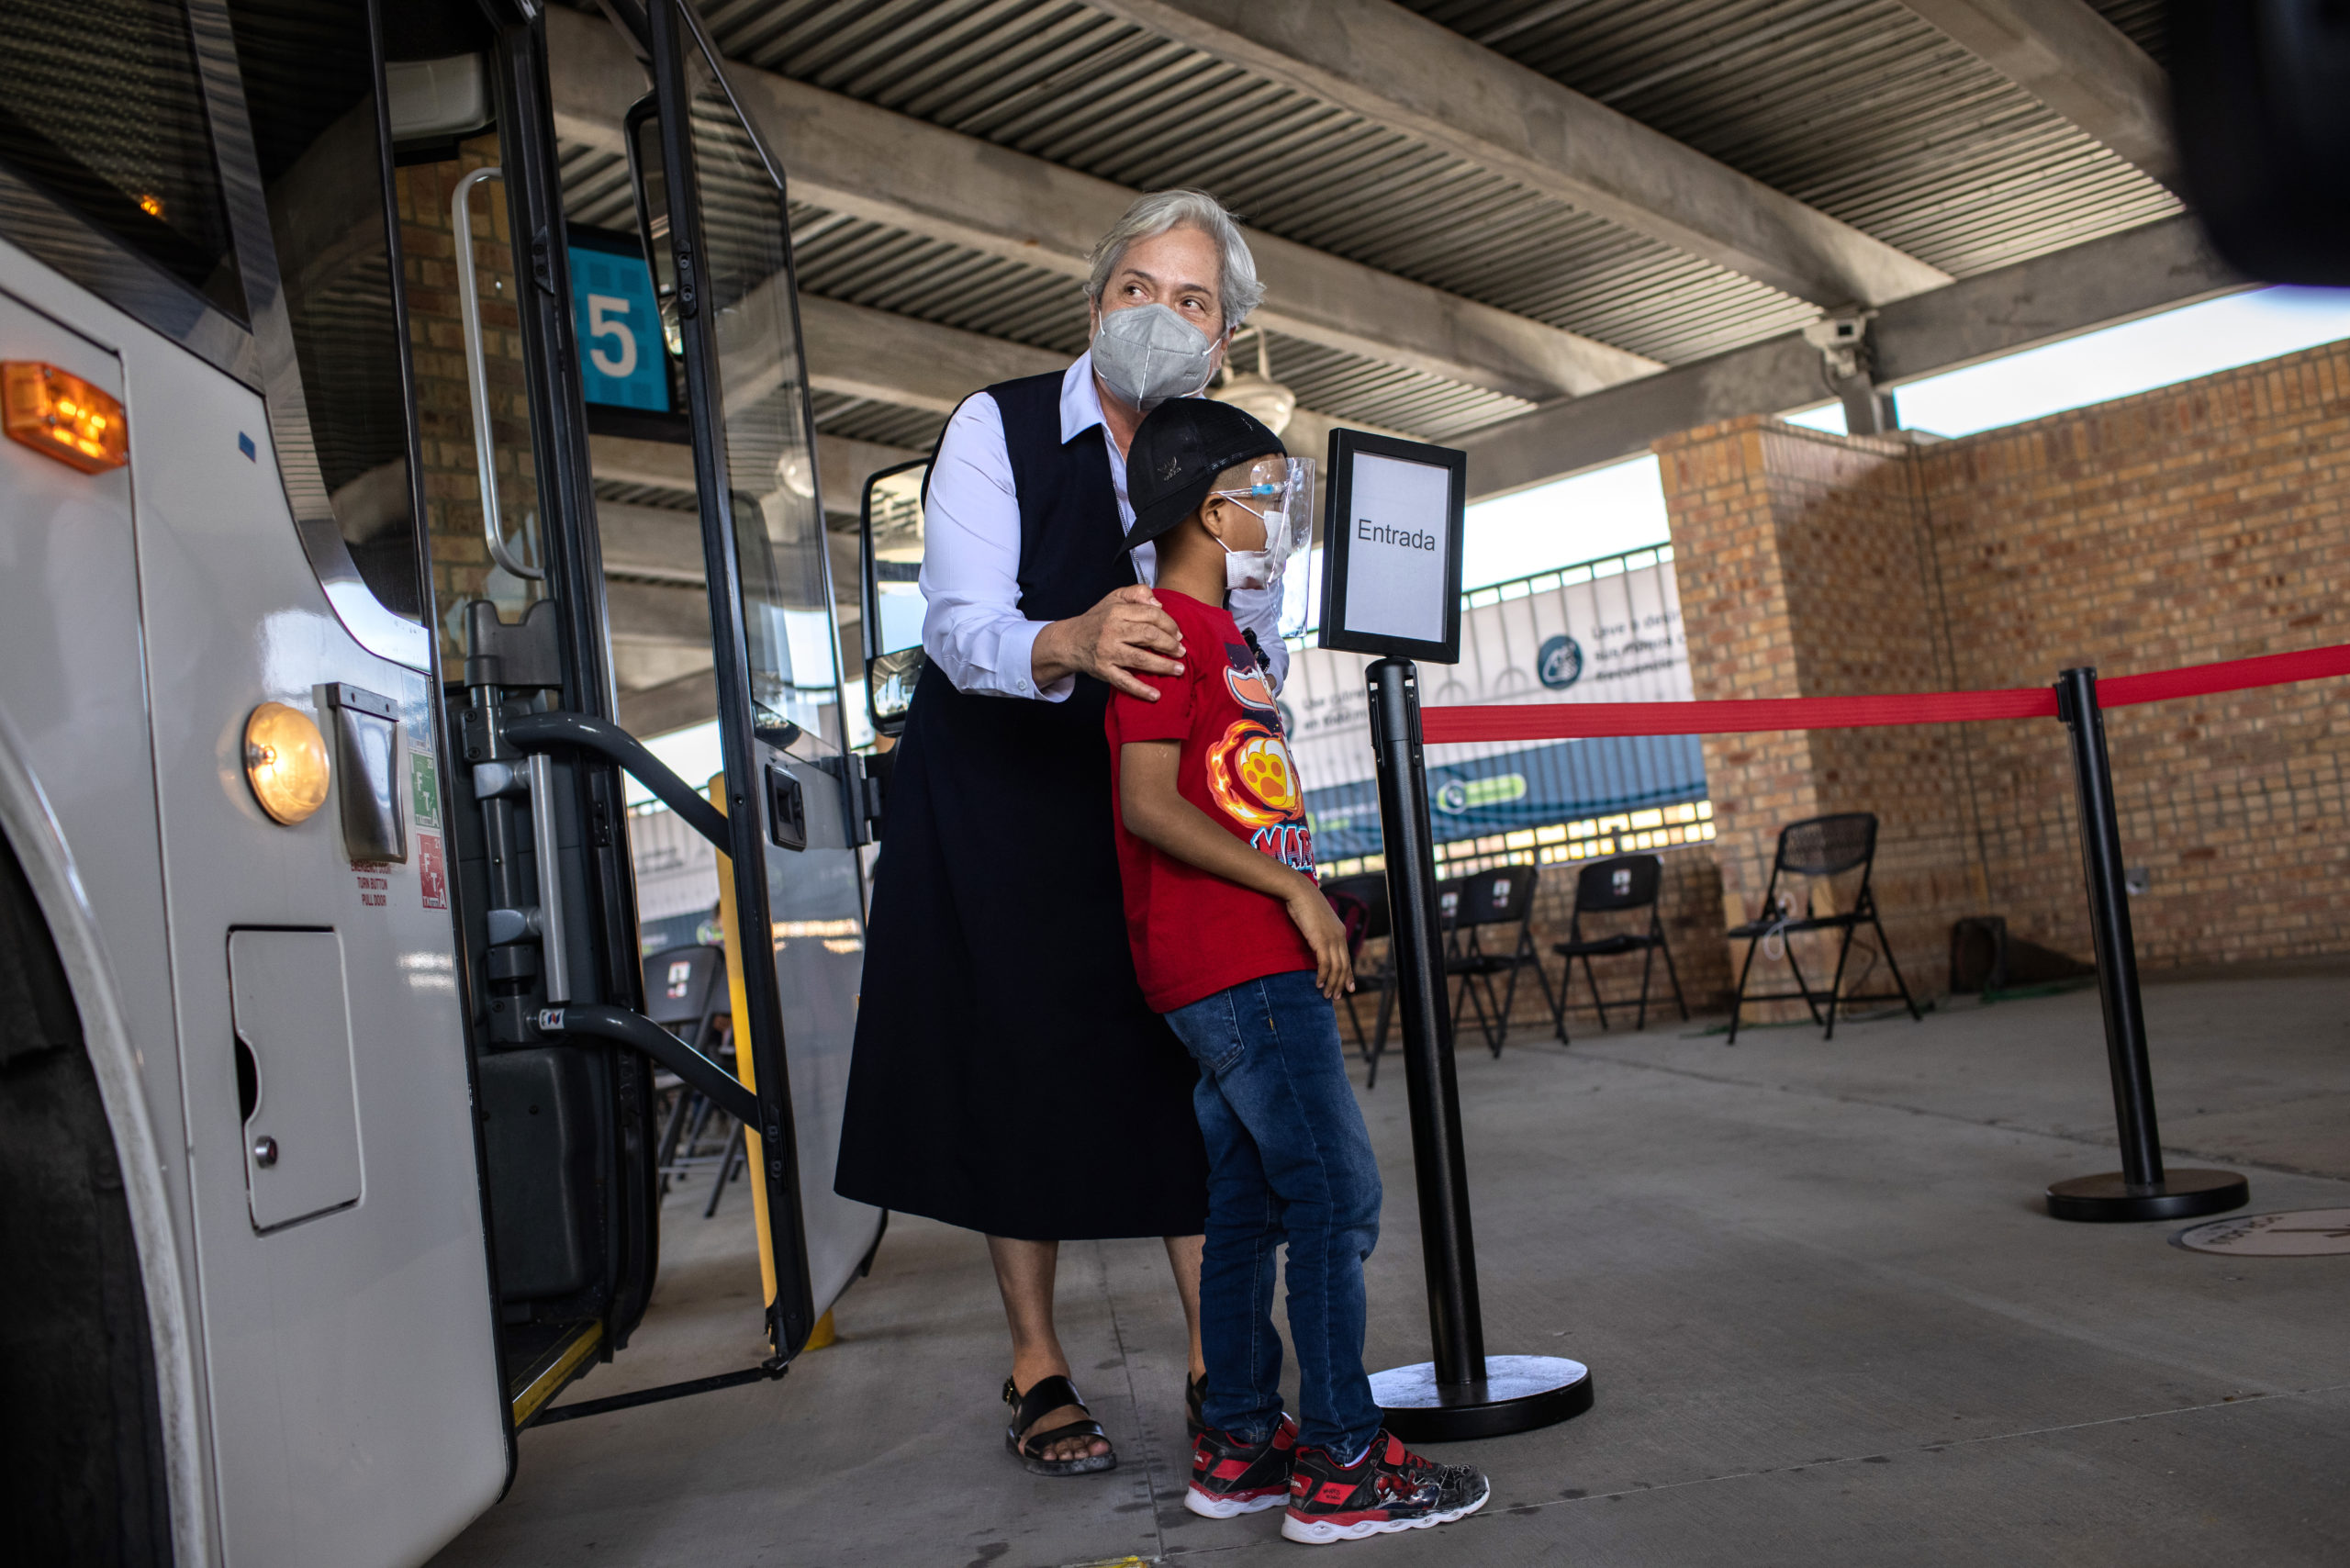 BROWNSVILLE, TEXAS - FEBRUARY 26: Sister Norma Pimentel, Executive Director of Catholic Charities of the Rio Grande Valley escorts a young asylum seeker upon his entry into the United States on February 26, 2021 in Brownsville, Texas. Her group was one of the first to cross into south Texas as part of the Biden administration's unwinding of the Trump-era Migrant Protection Protocols, (MPP), also known as the 'Remain in Mexico' immigration policy. Many of the asylum seekers had been waiting in the squalid camp alongside the Rio Grande in Matamoros for more than a year and became close to camp logistics workers, many of them American. The immigrants are now free to travel to destinations within the United States pending asylum court hearings. (Photo by John Moore/Getty Images)